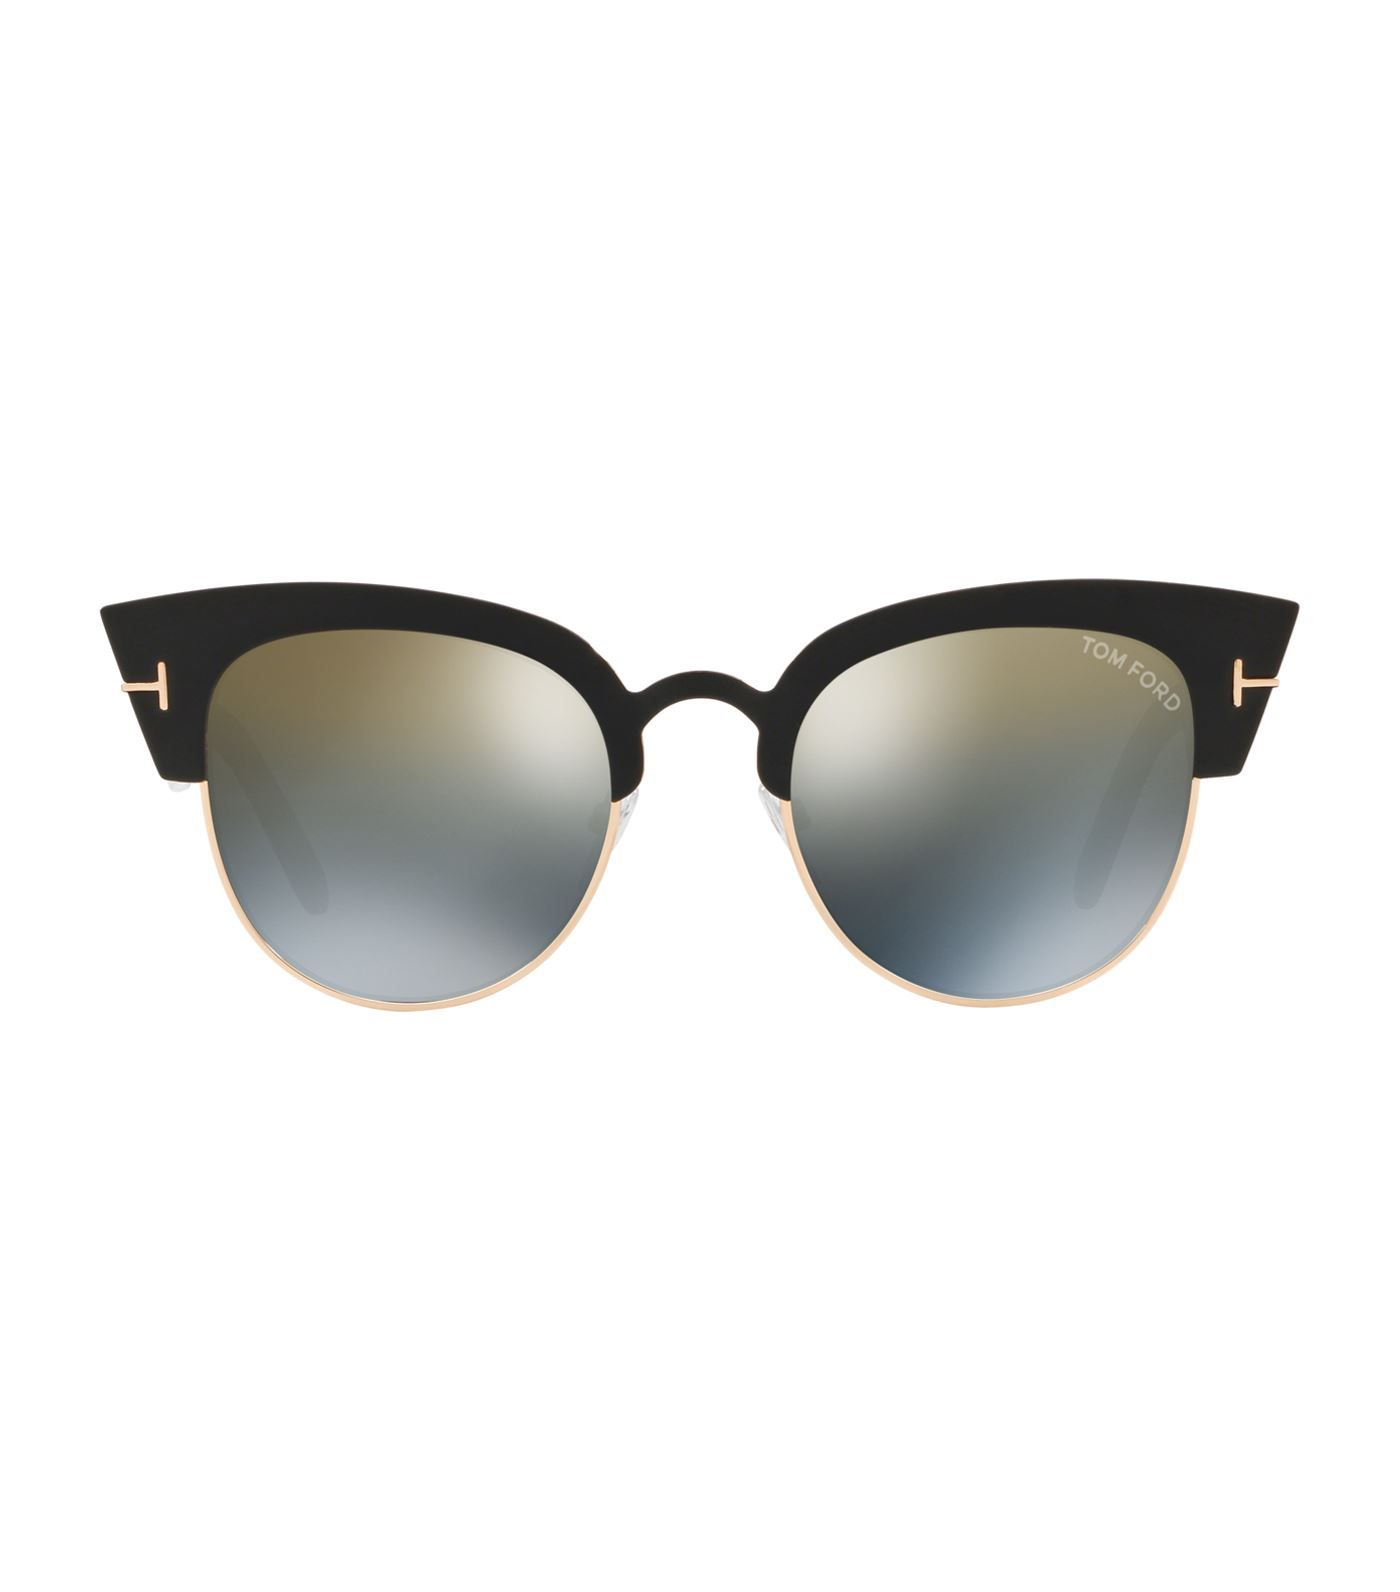 2019Items For Poly Retro In Sunglasses 0ZNwPX8nOk